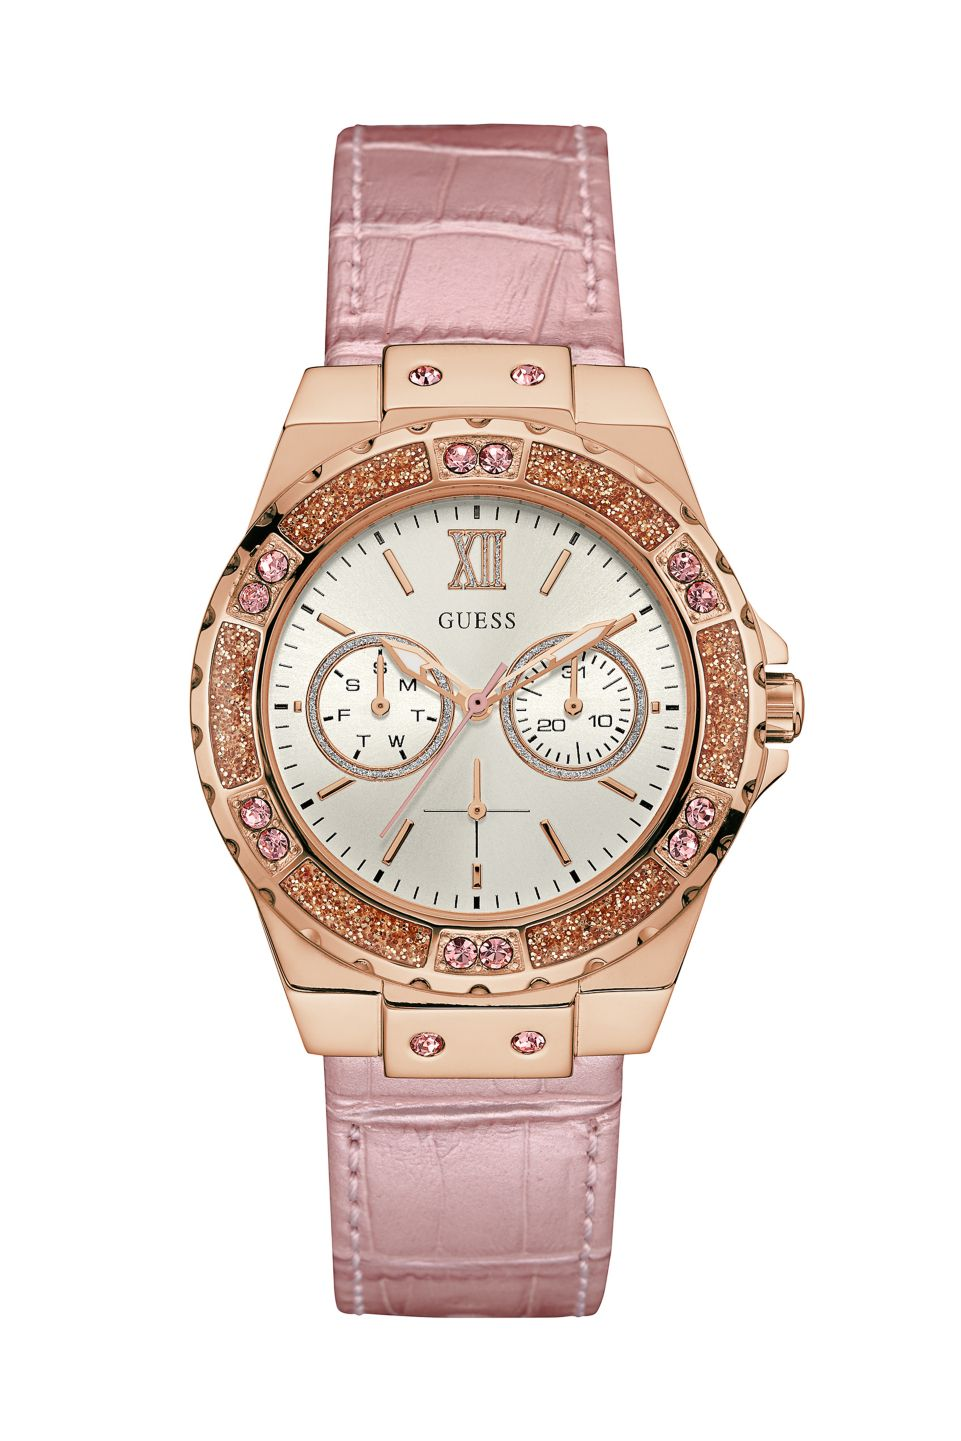 0ed734dcaf72 Pink and Rose Gold-Tone High Style Watch   GUESS.com Accesorios